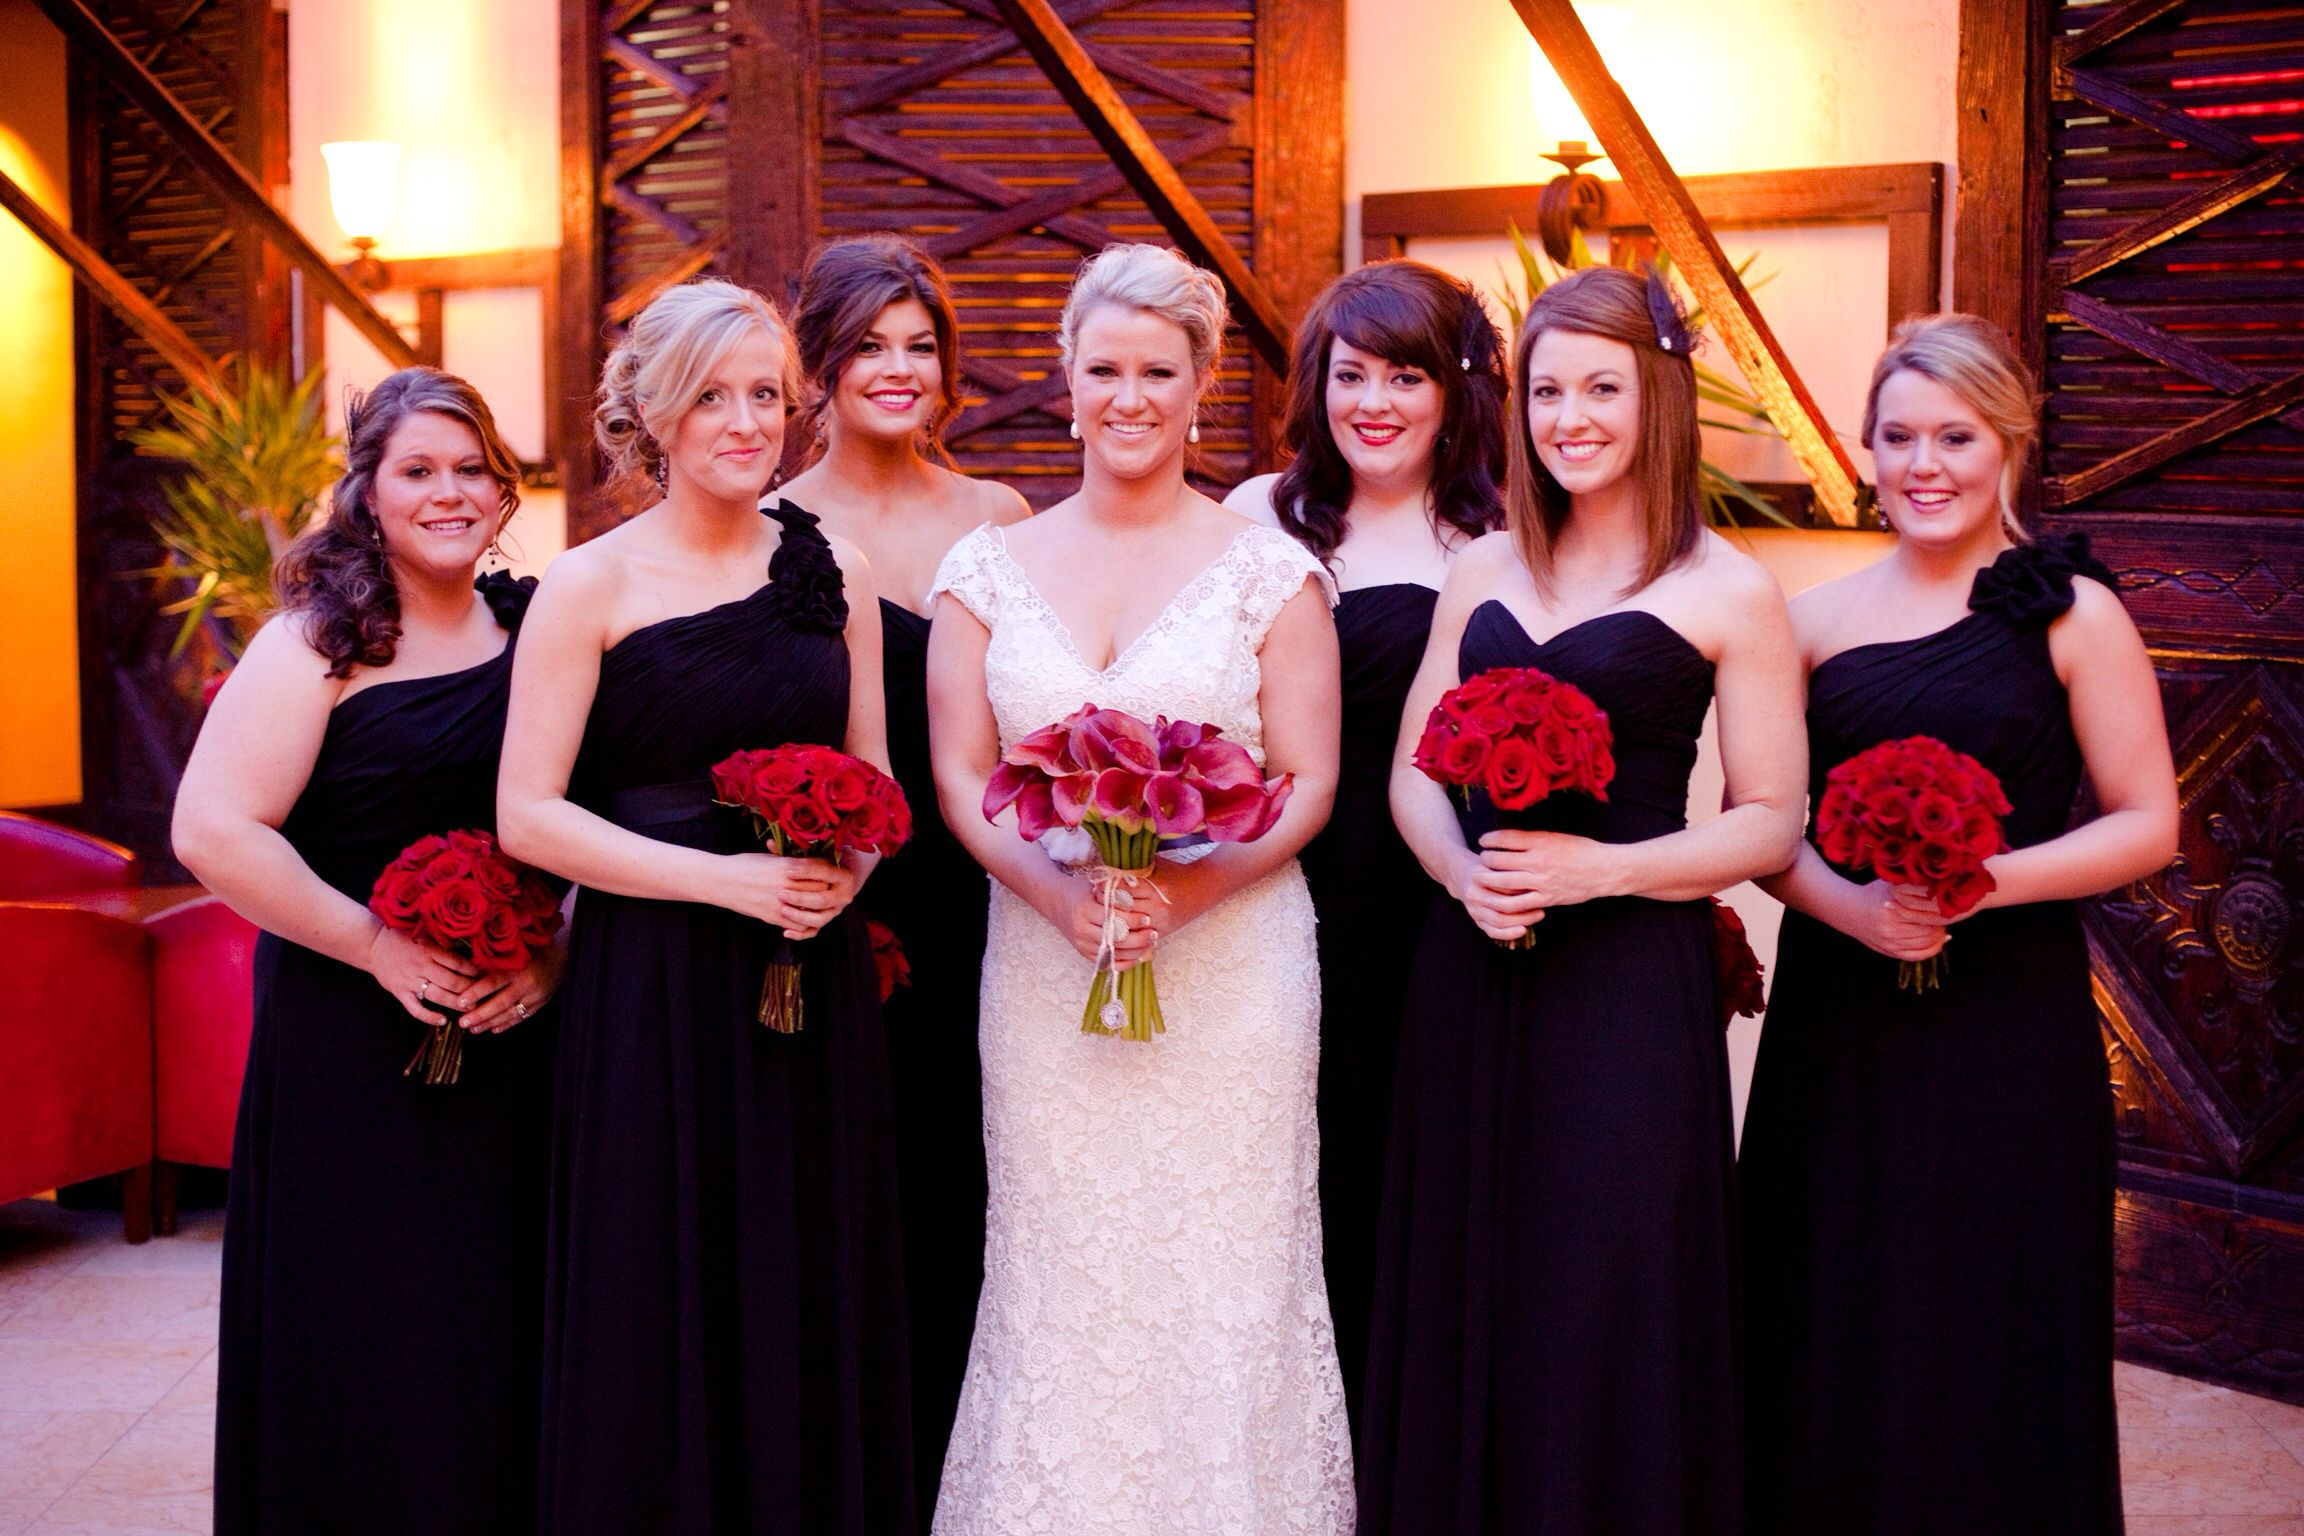 Rock and roll red wedding black bridesmaids dresses with feather bridesmaid rock and roll red wedding black bridesmaids dresses ombrellifo Image collections